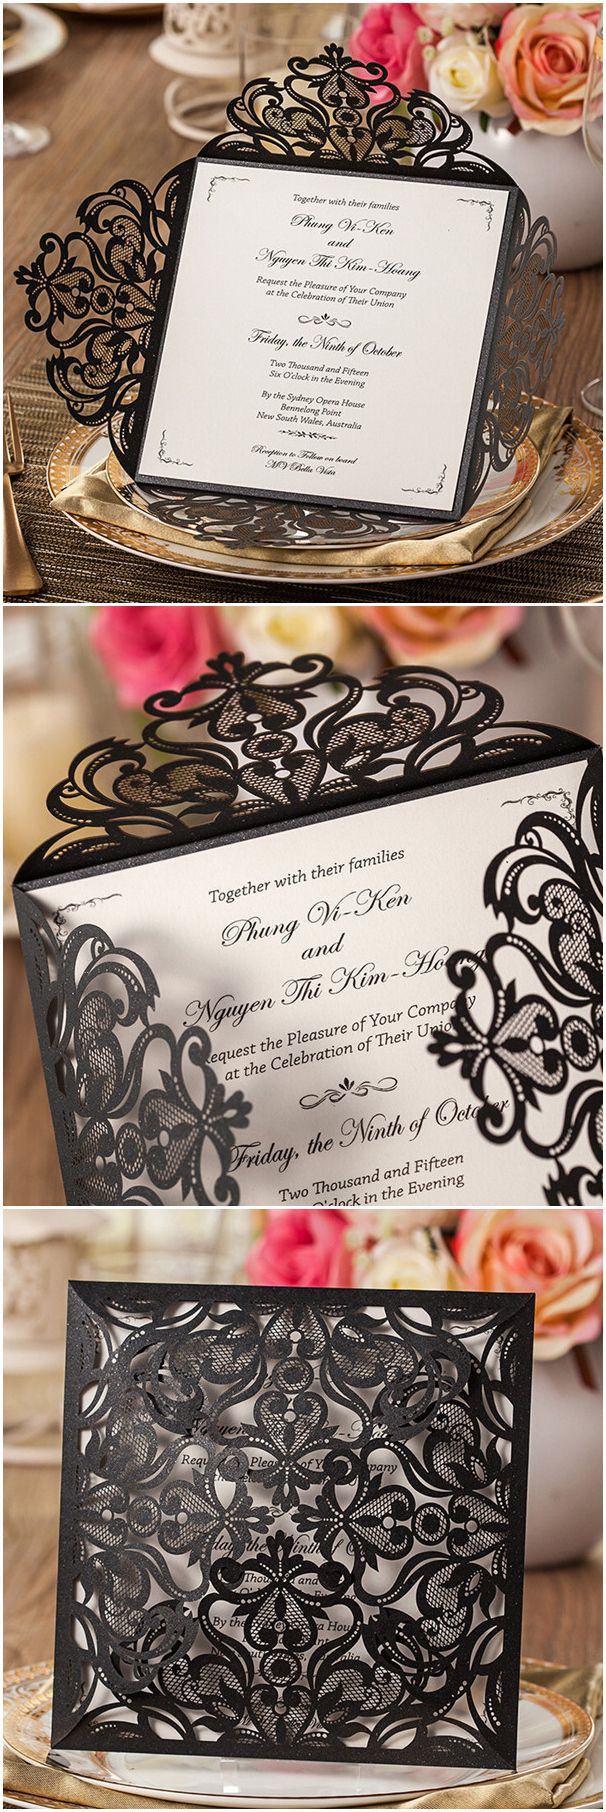 134 Best Wedding Invitations Images On Pinterest Invitation Ideas